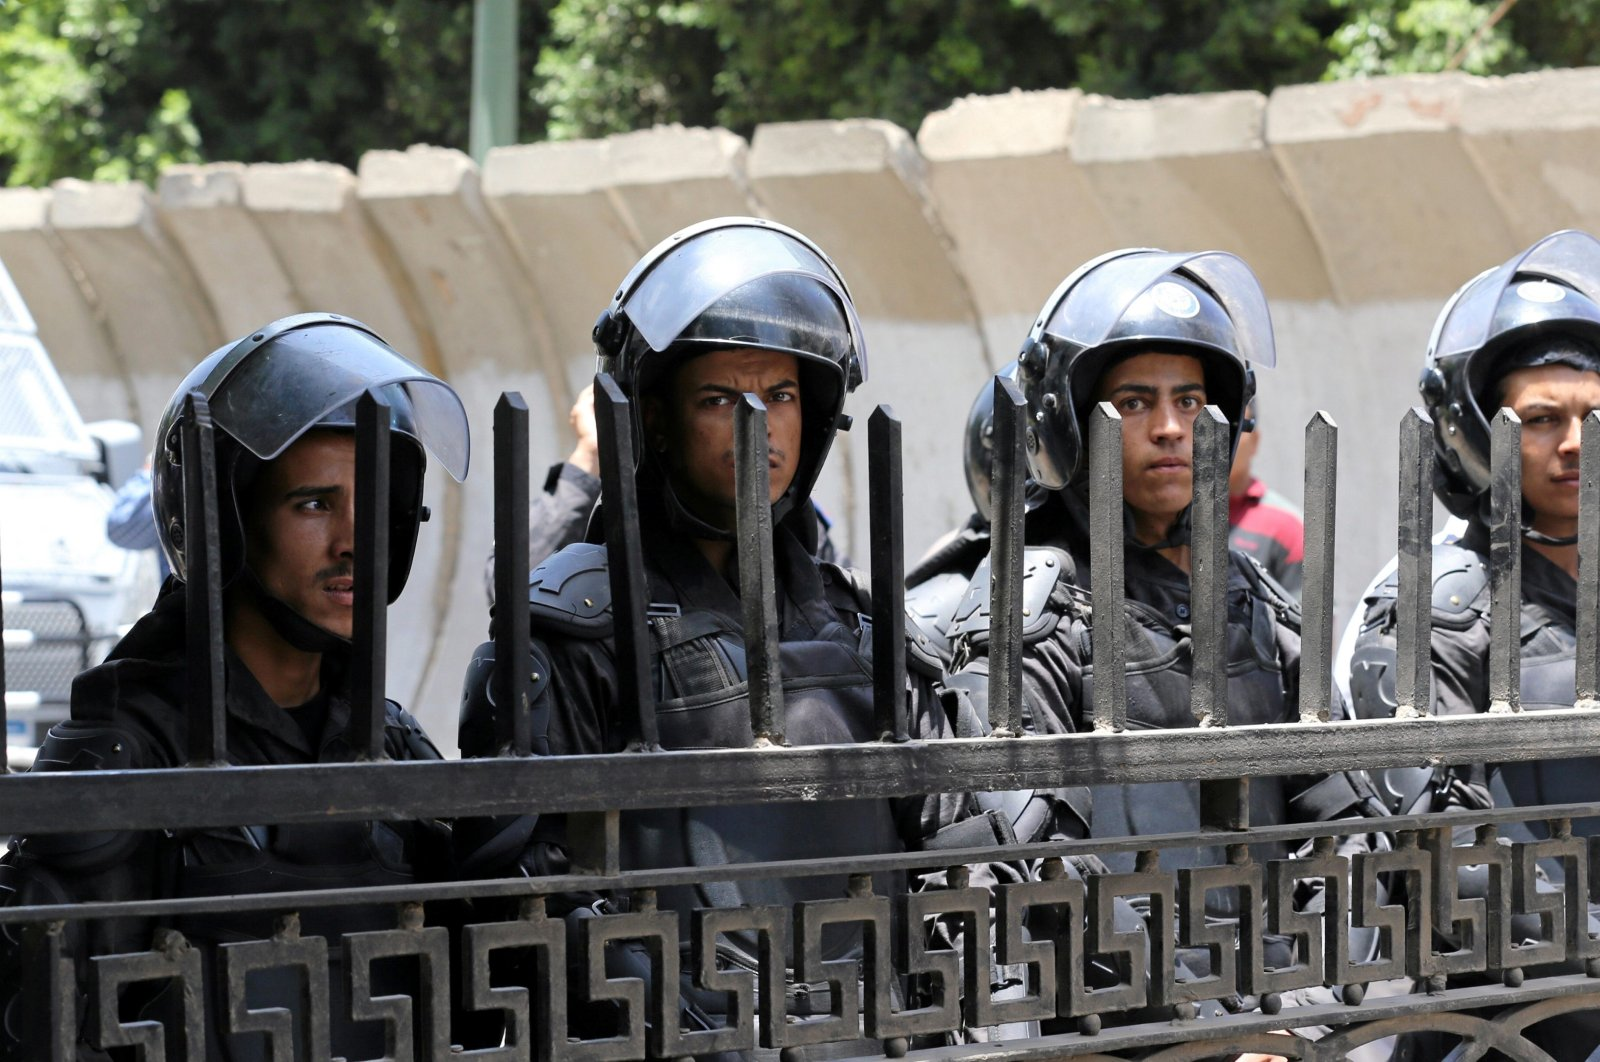 Riot police stand in front of parliament as high school students take part in a protest against the cancellation and postponement of exams after a series of exam leaks, in Cairo, Egypt, June 27, 2016. (Reuters Photo)